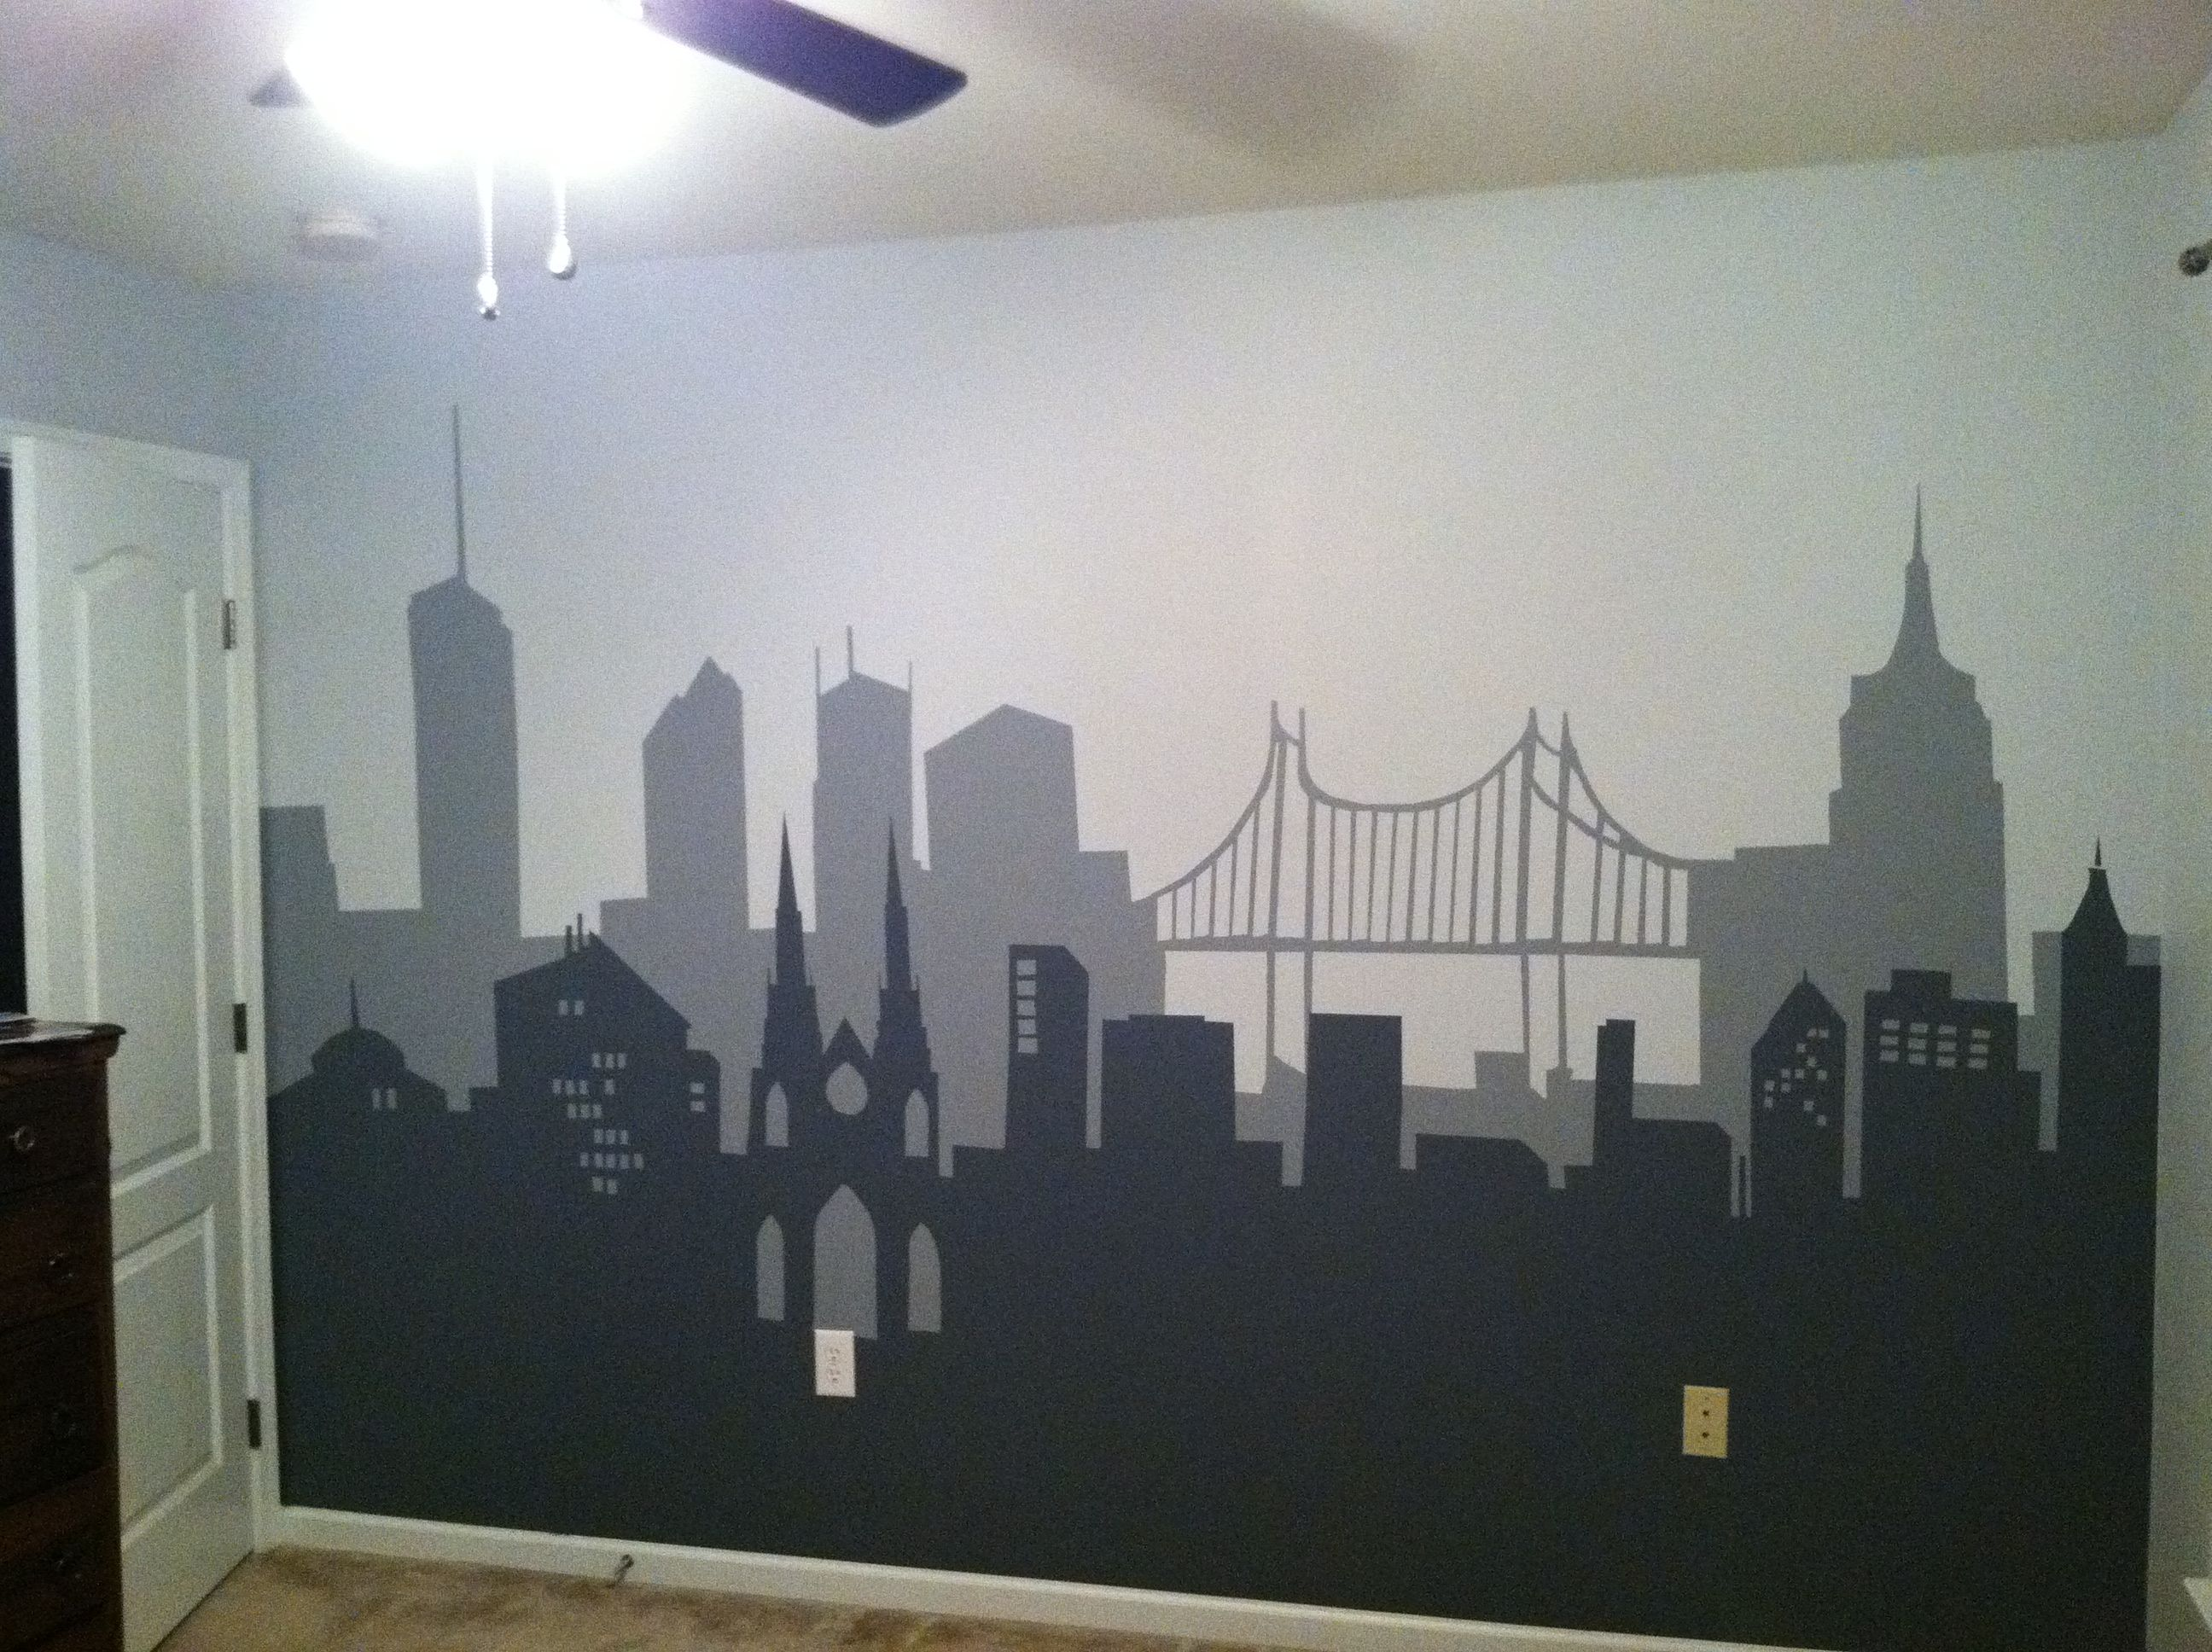 Batman Bedroom I Painted For Son Using Clipart Silhouettes, Painters Tape  And A Craft Projector